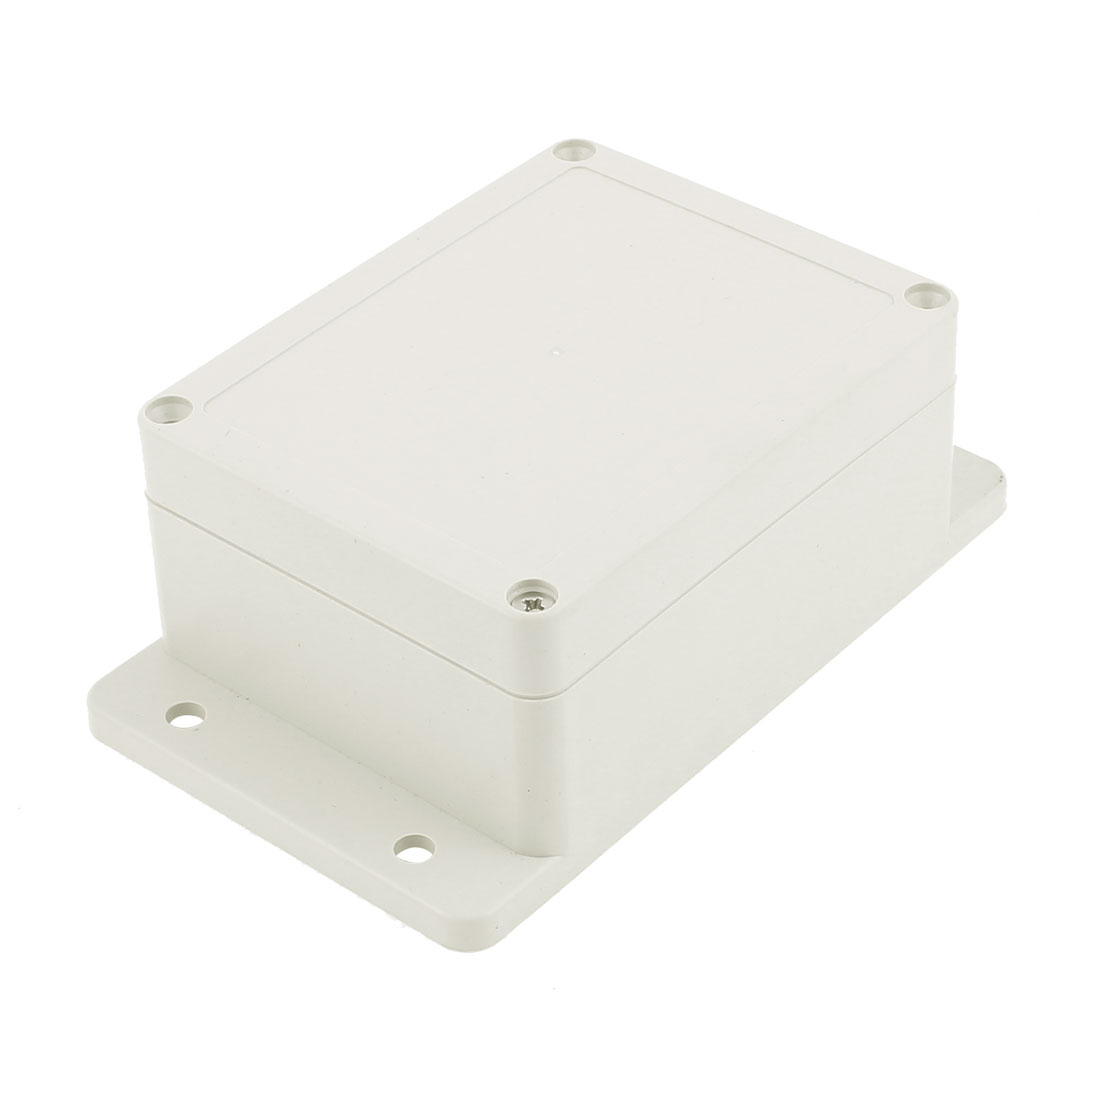 152 x 90 x 55mm Dustproof IP65 Junction Box DIY Terminal Connecting Enclosure